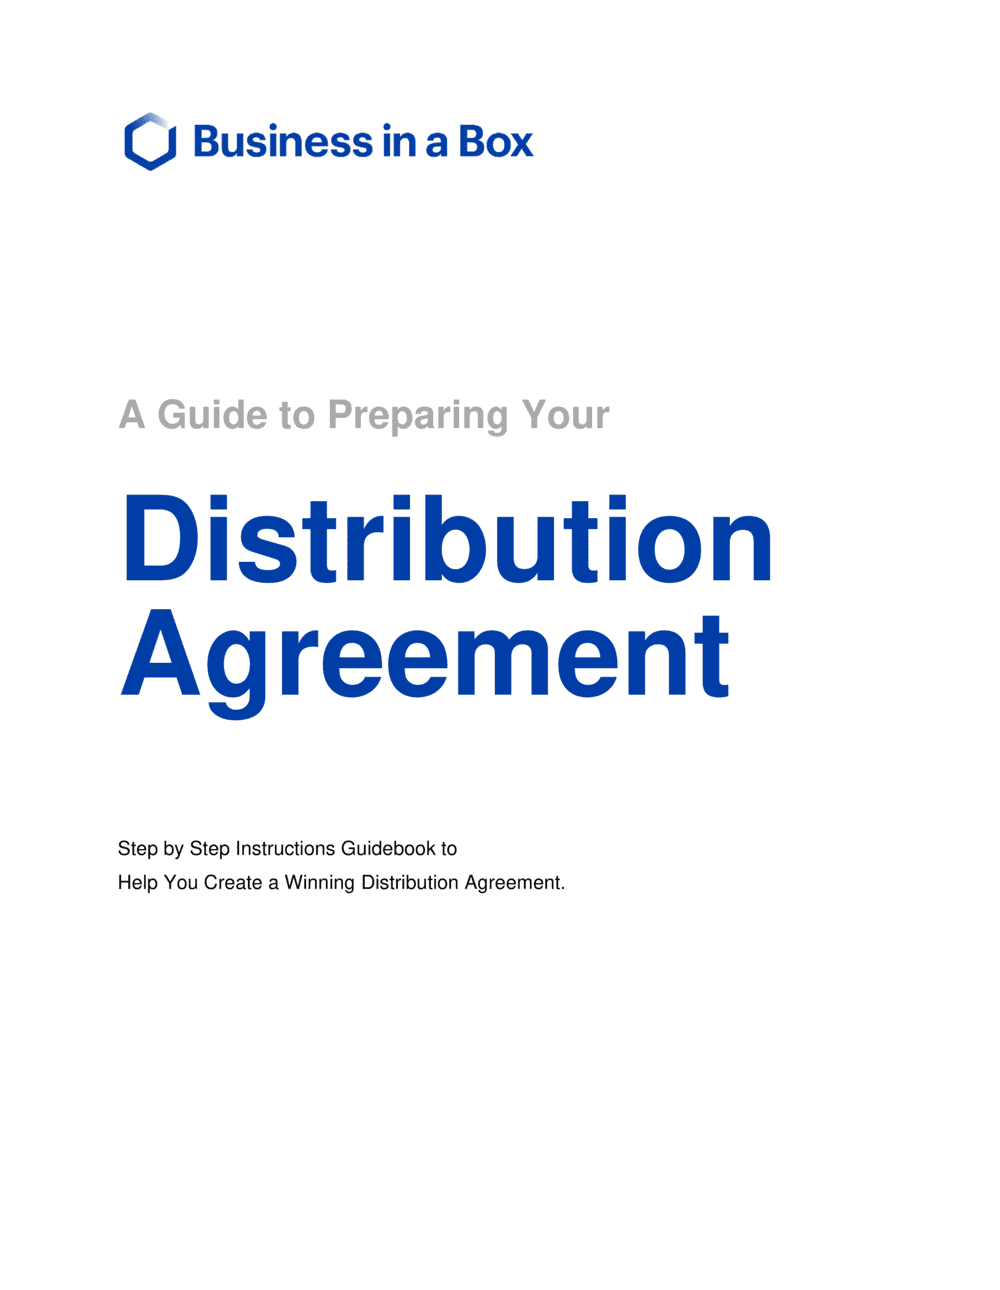 Business-in-a-Box's How To Write A Distribution Agreement Template